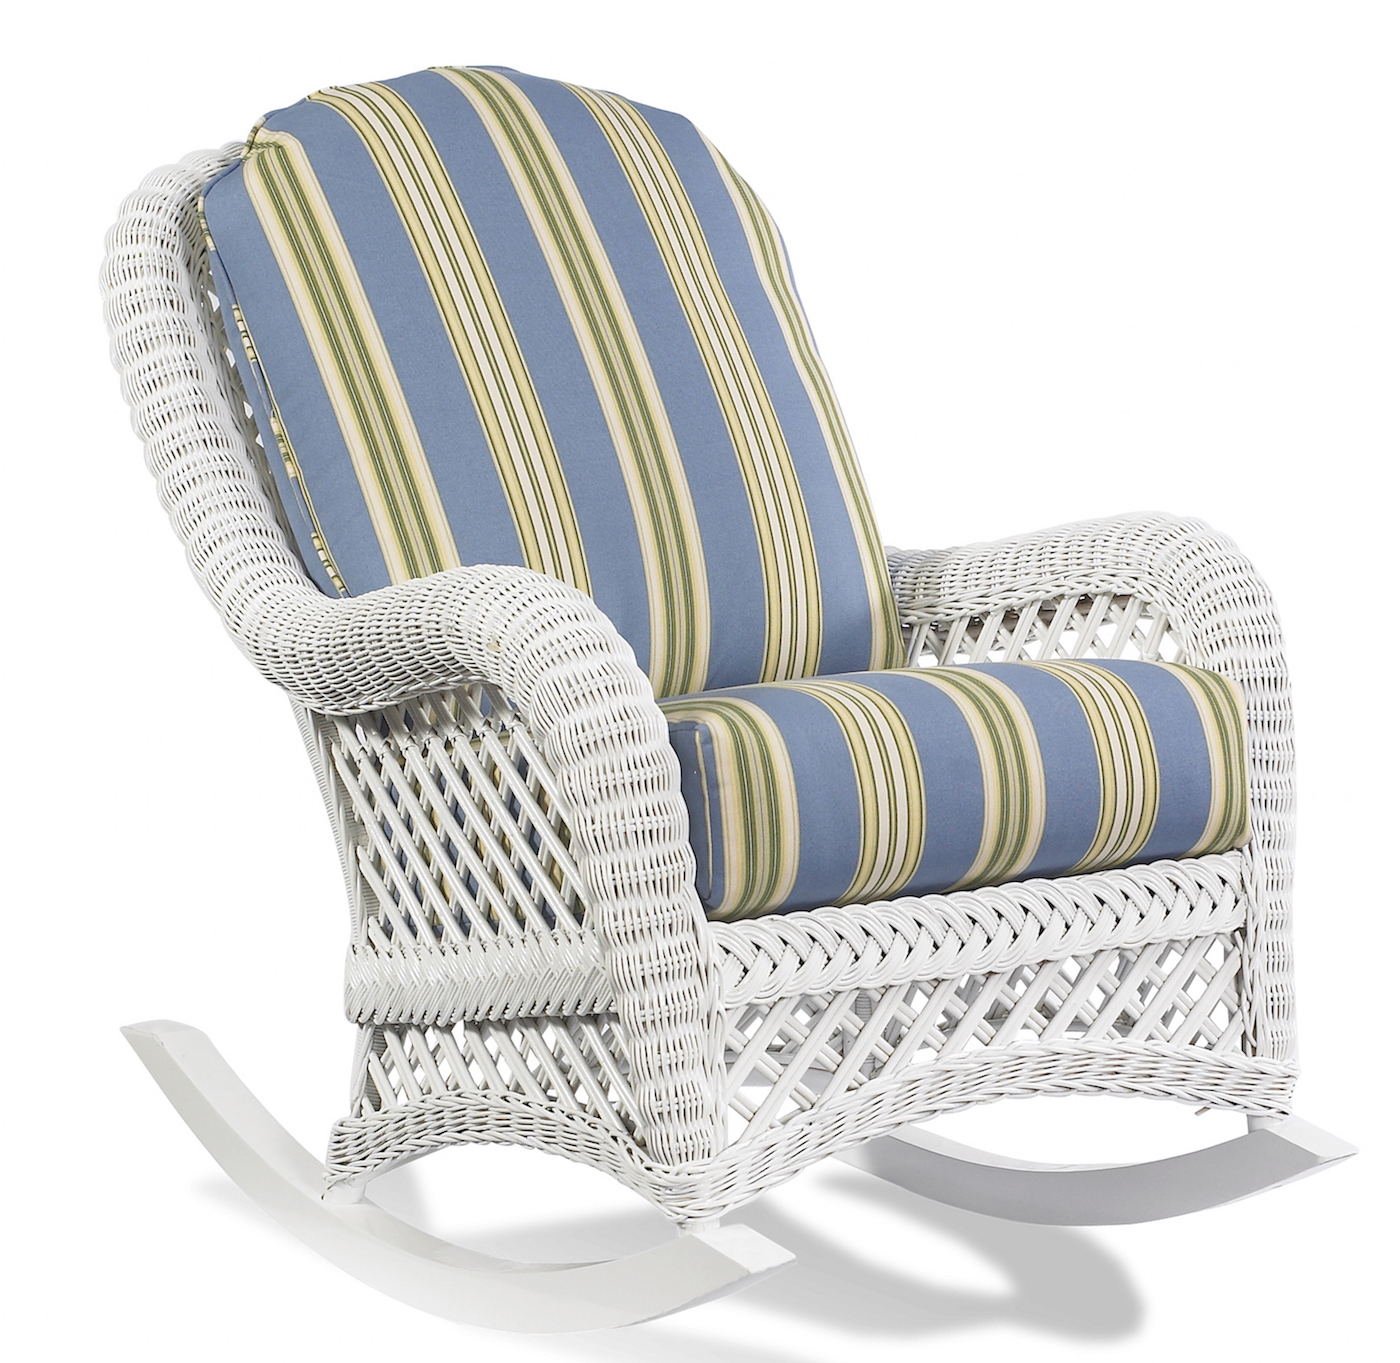 inspiring aflk chair best concept rockers inspiration and glider furniture armchair wicker image rocking for outdoor